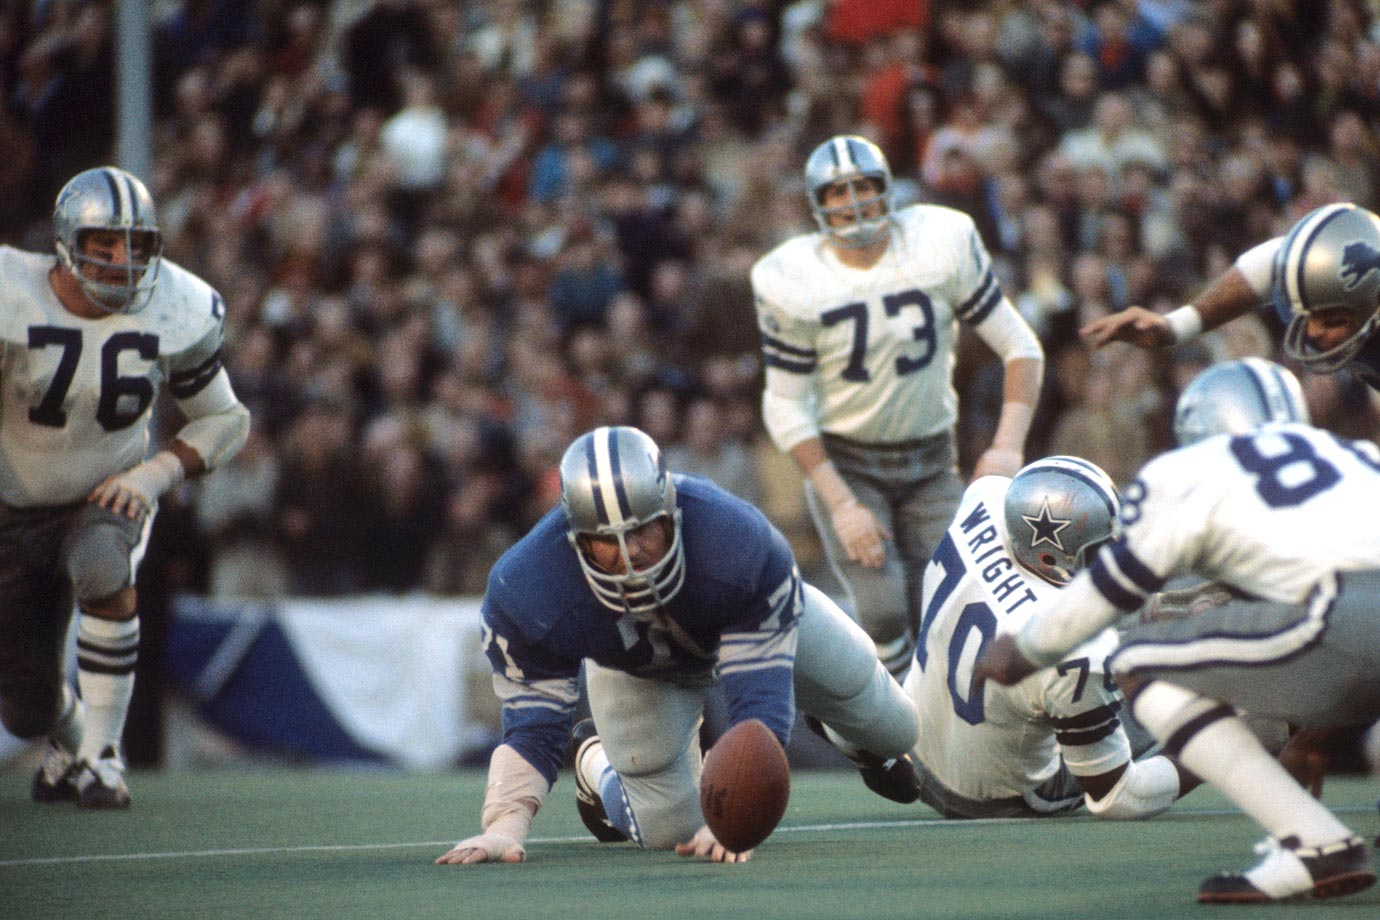 Alex Karras recovers a fumble during the NFC Divisional Playoff game between the Detroit Lions and the Dallas Cowboys on Dec. 26, 1970 at the Cotton Bowl in Dallas.